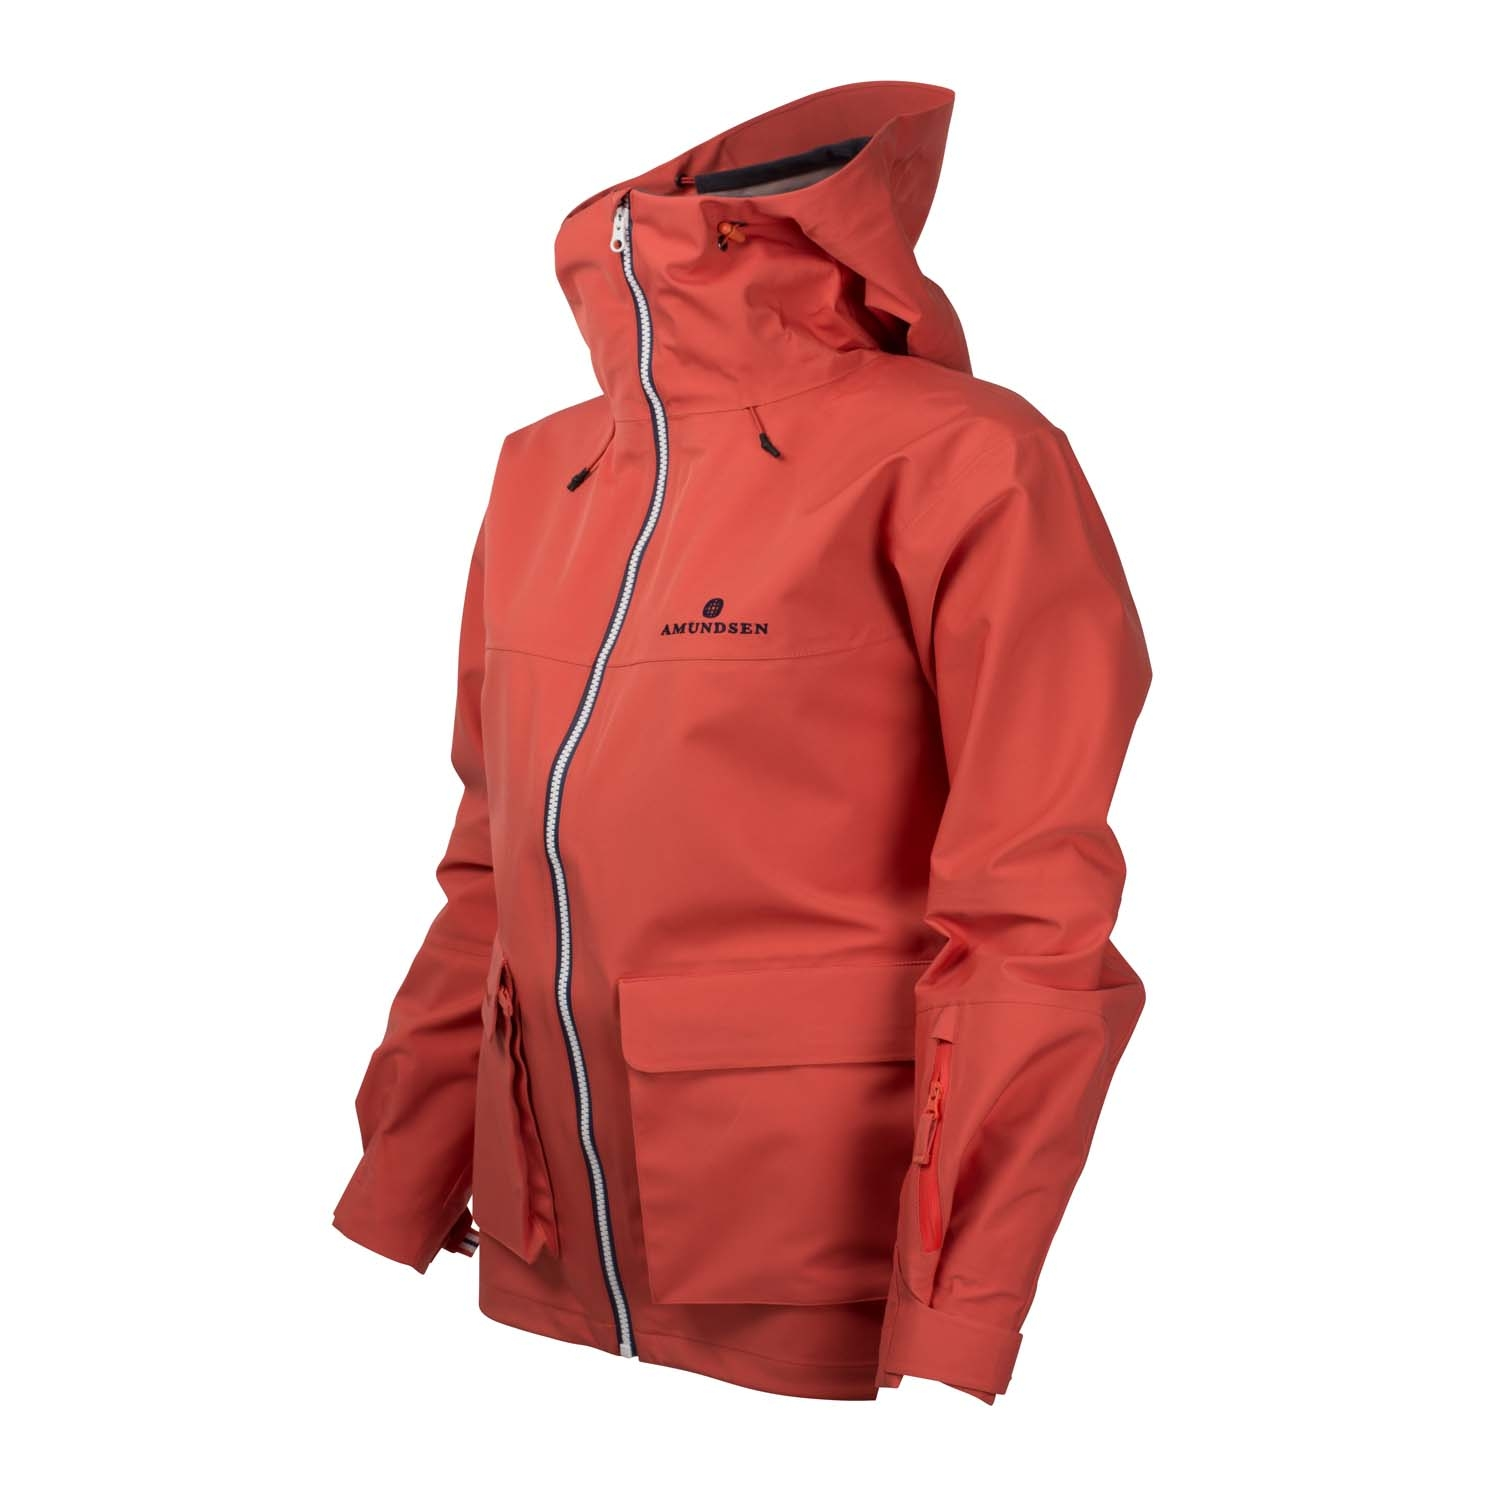 Amundsen Womens Peak Jacket Weathered Red 2020